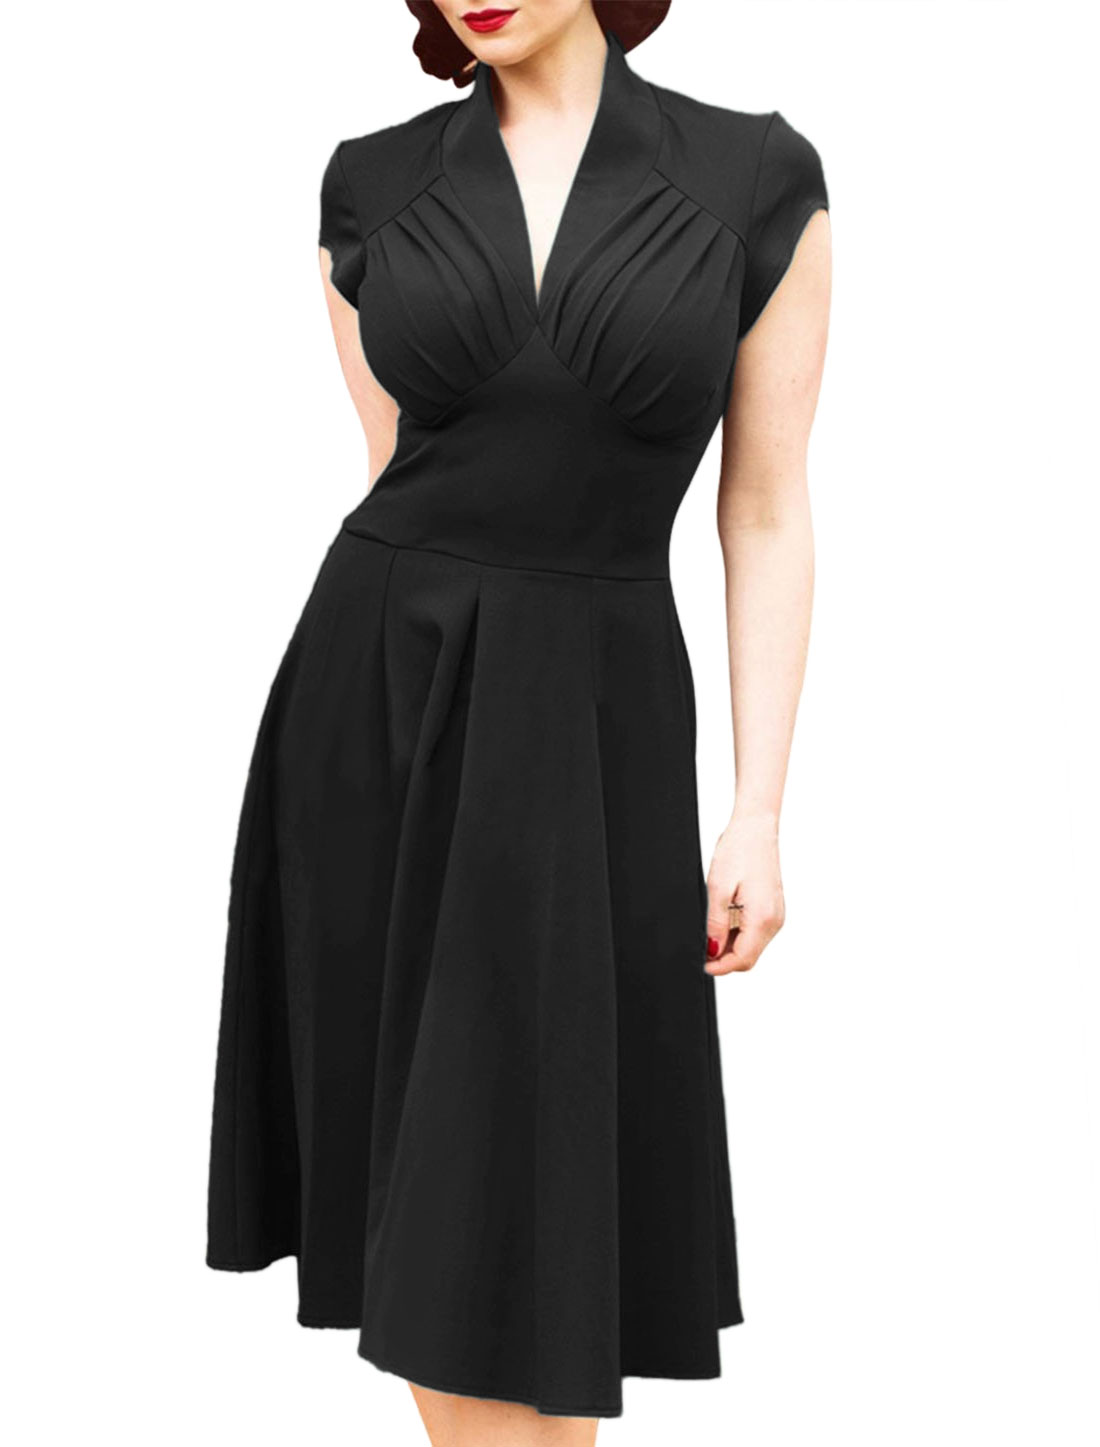 Women V Neck Ruched Cap Sleeves Fit and Flare Dress Black L